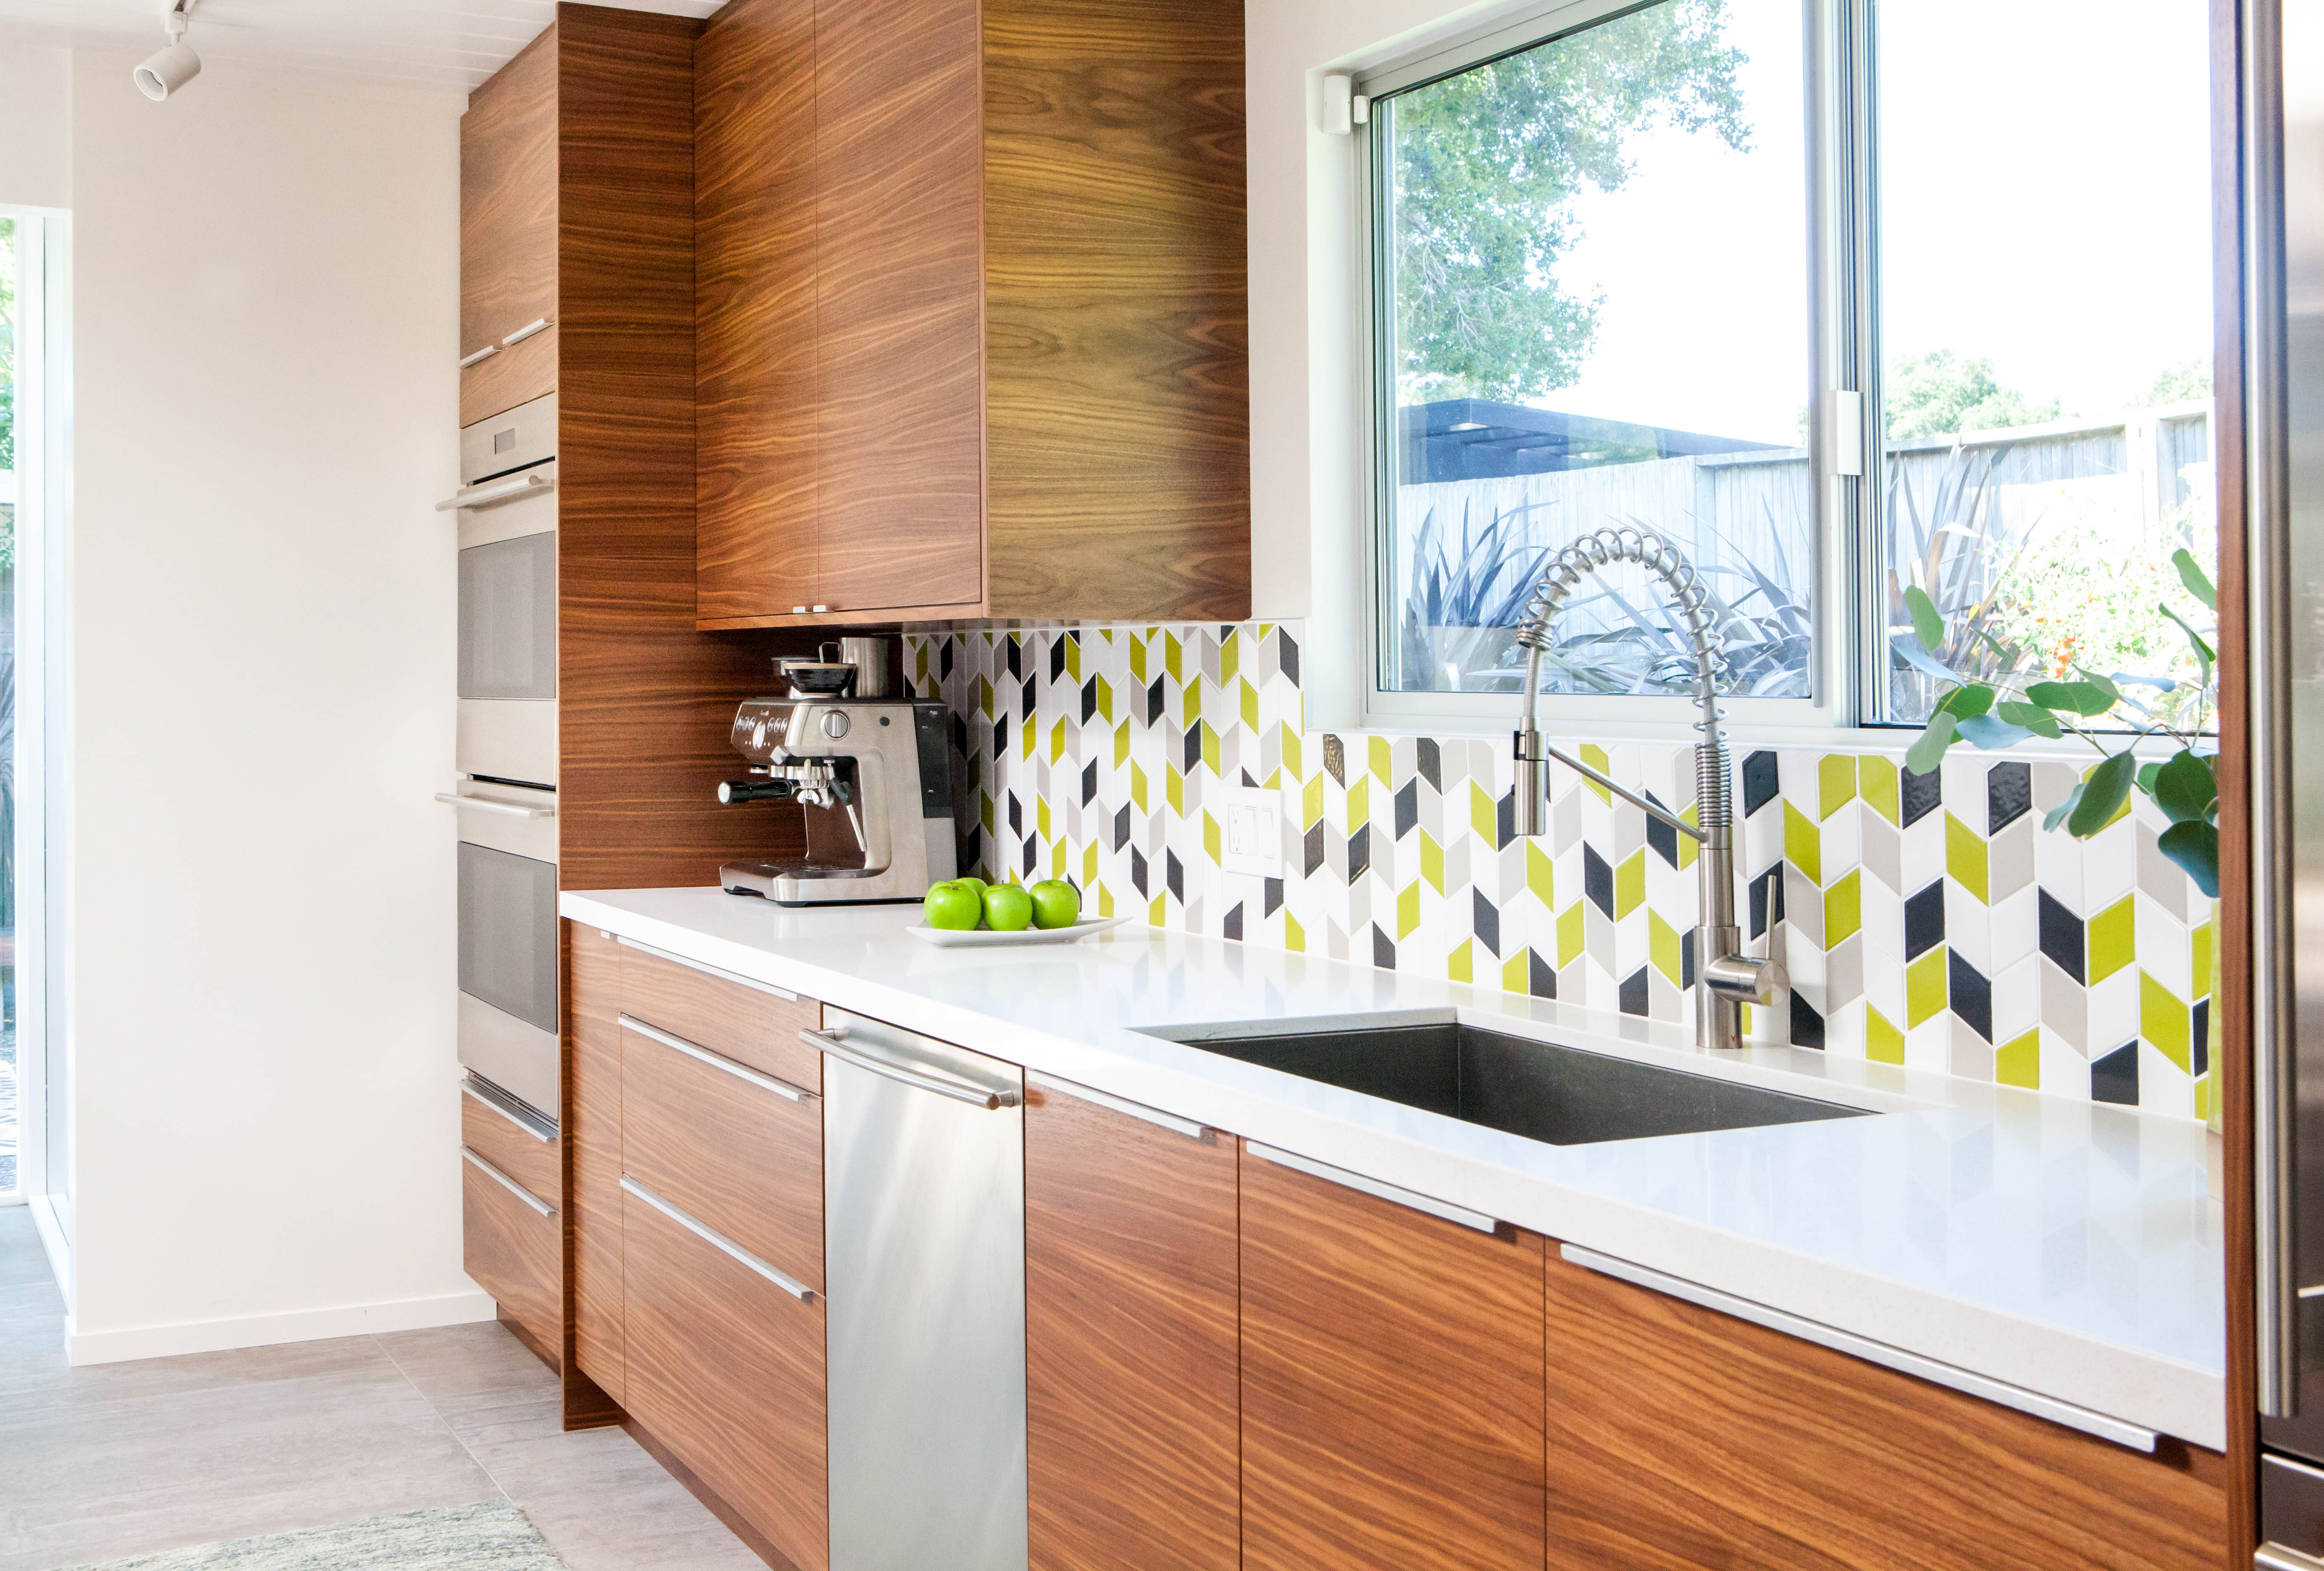 2017_Q3_image_residential_Destination_Eichler_kitchen_backsplash_bar_tile_mosaic_small_diamond_stitch_white_wash_dolomite_akoya_chartreuse.jpg?mtime=20180918134638#asset:409863